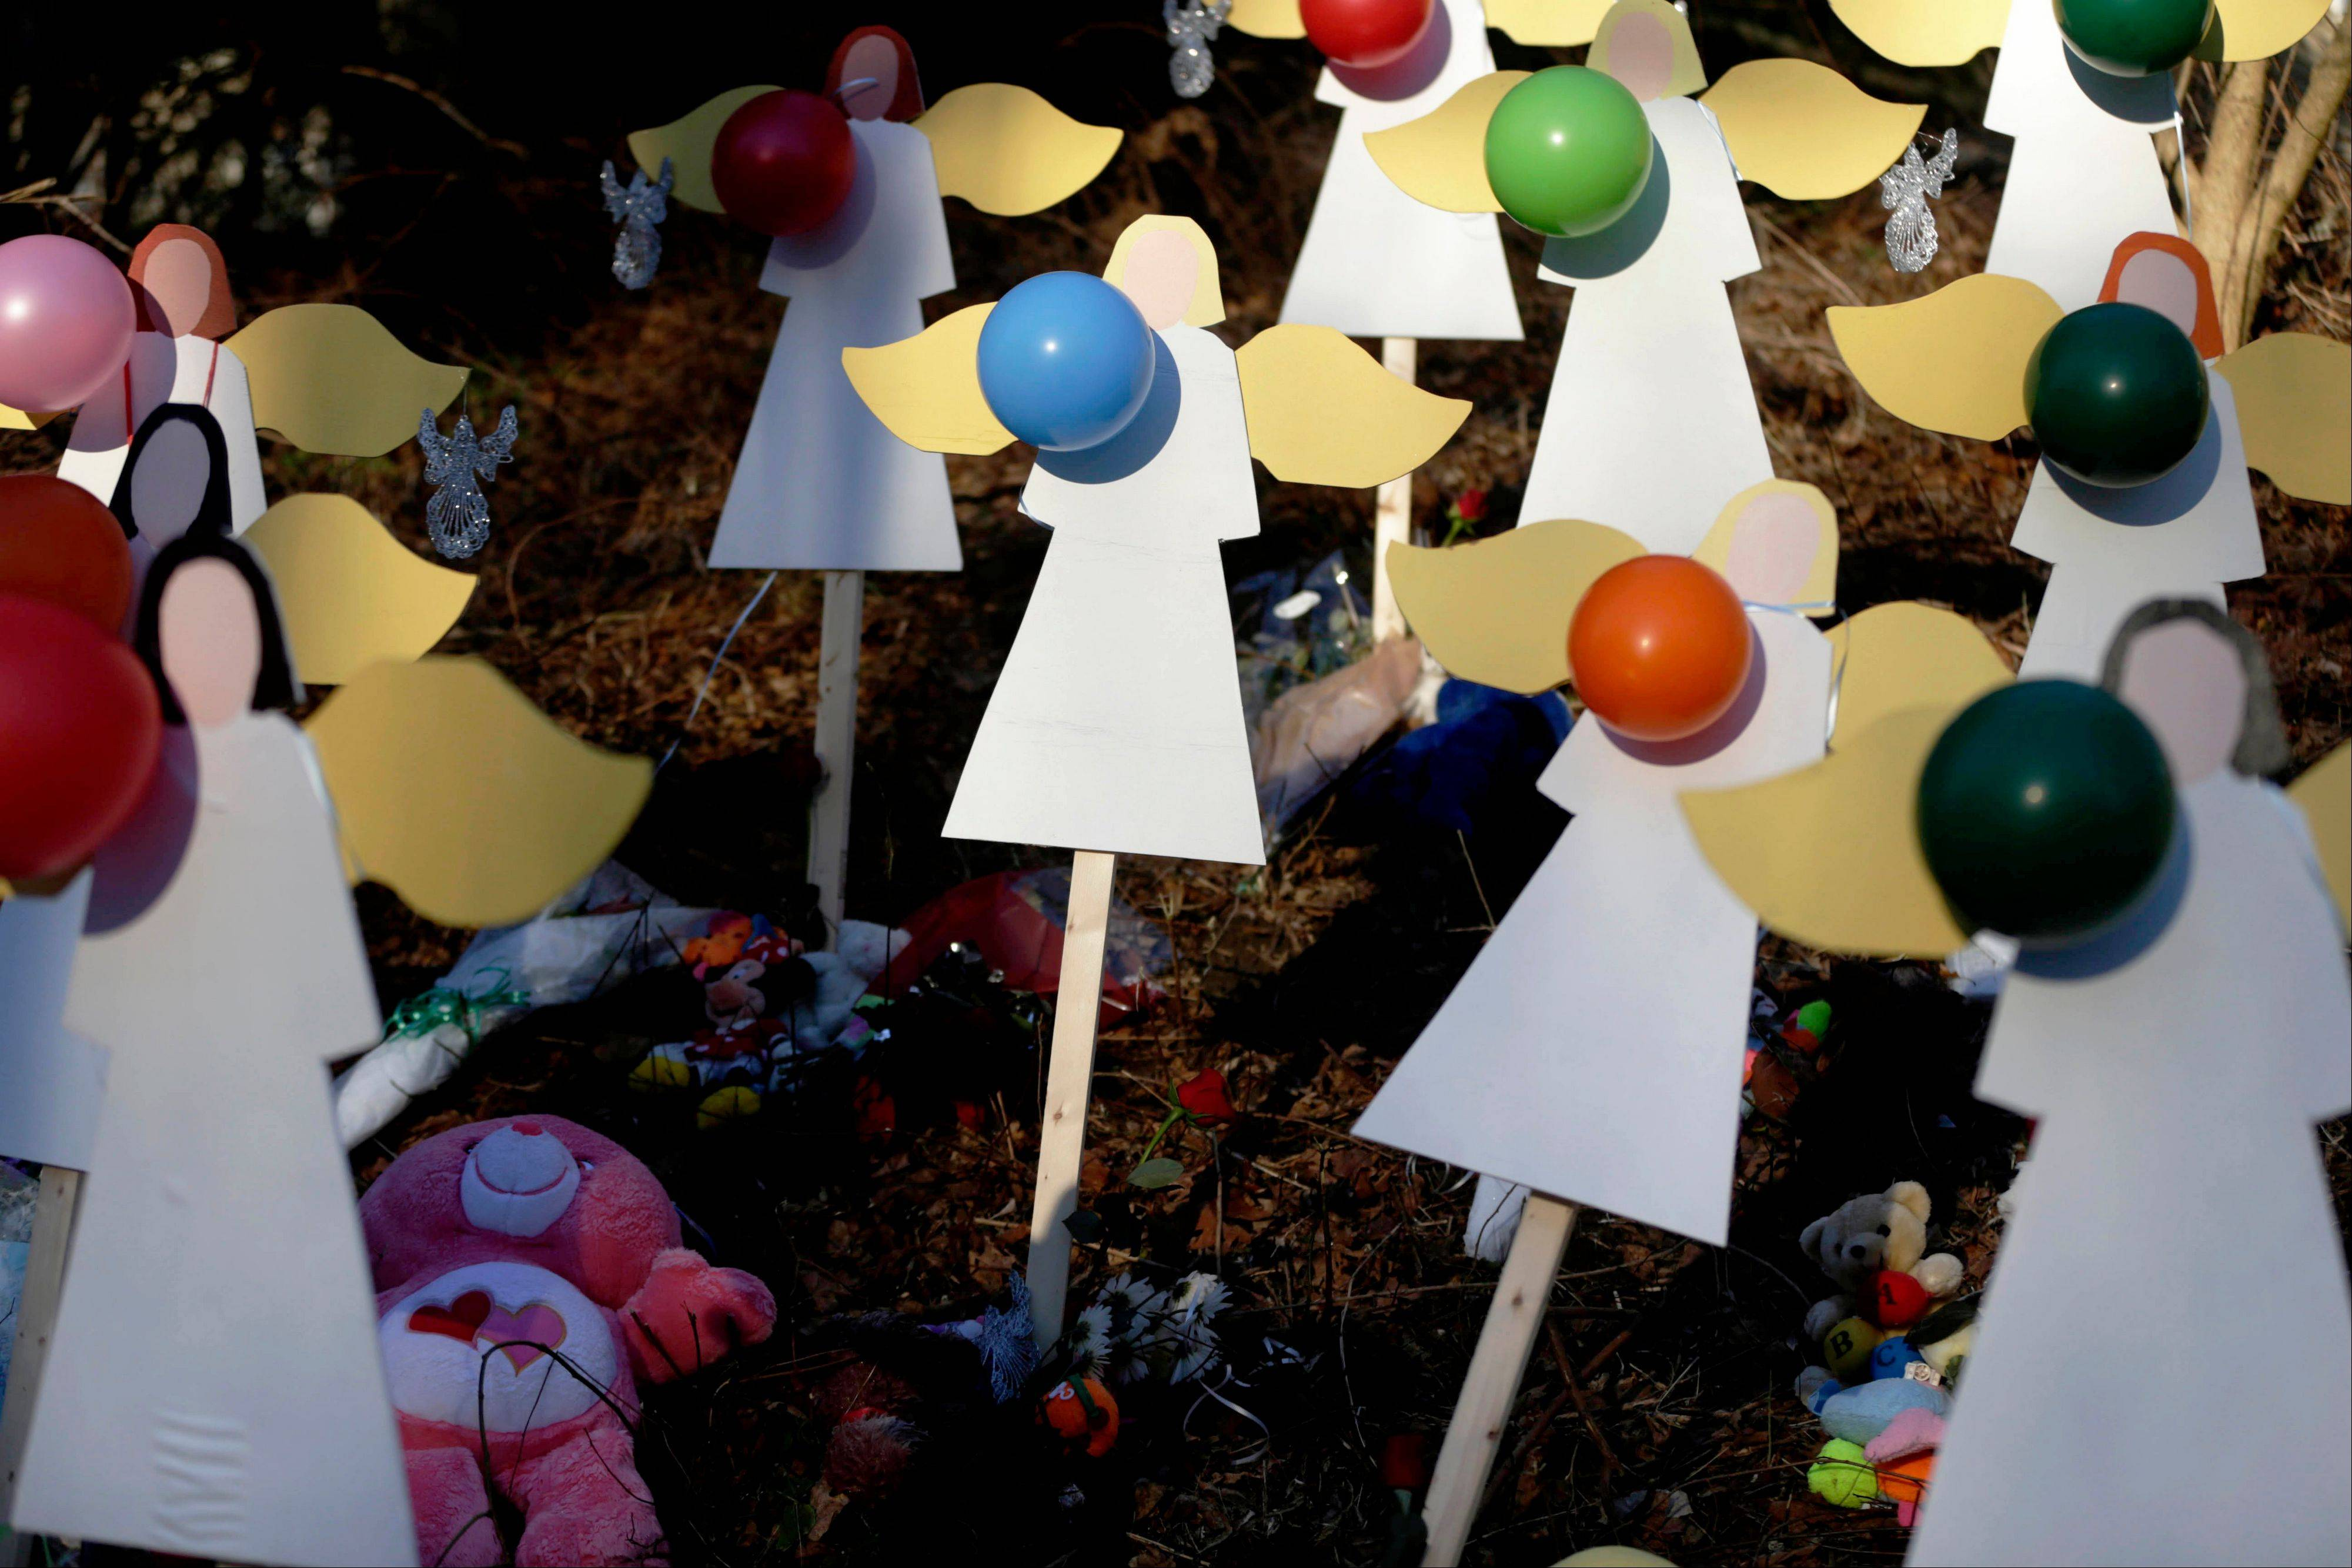 Wooden angels are displayed as part of memorial to shooting victims in Newtown, Conn., Thursday, Dec. 20, 2012. Aanxious parents are buying armored backpacks for children and firearms enthusiasts stocking up on semiautomatic rifles in anticipation of tighter gun control measures.